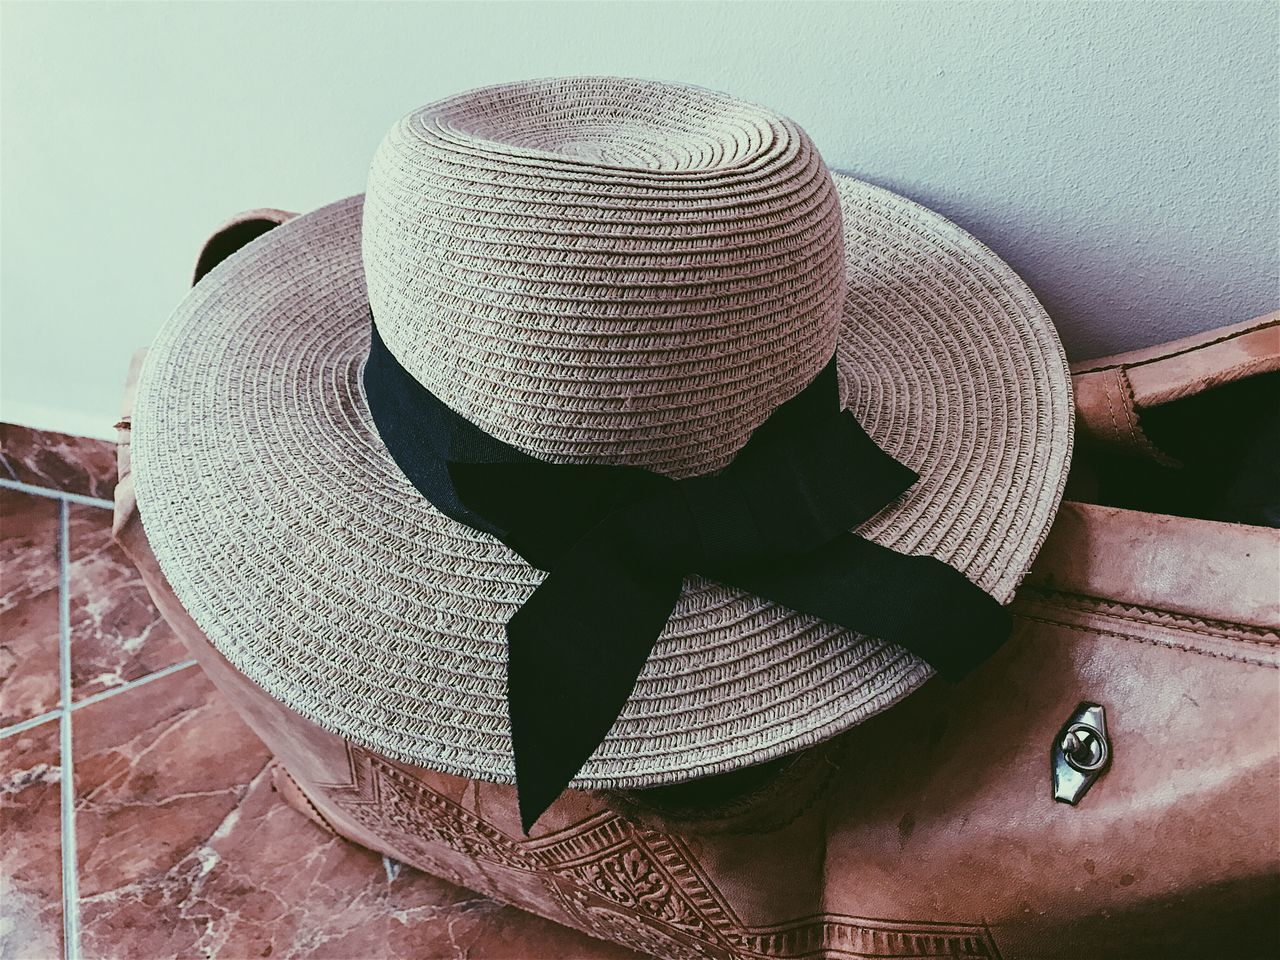 No People Day Indoors  Close-up Hat Woman Hat Summer Travel Bag Old Bag Vintage Woman Clothes